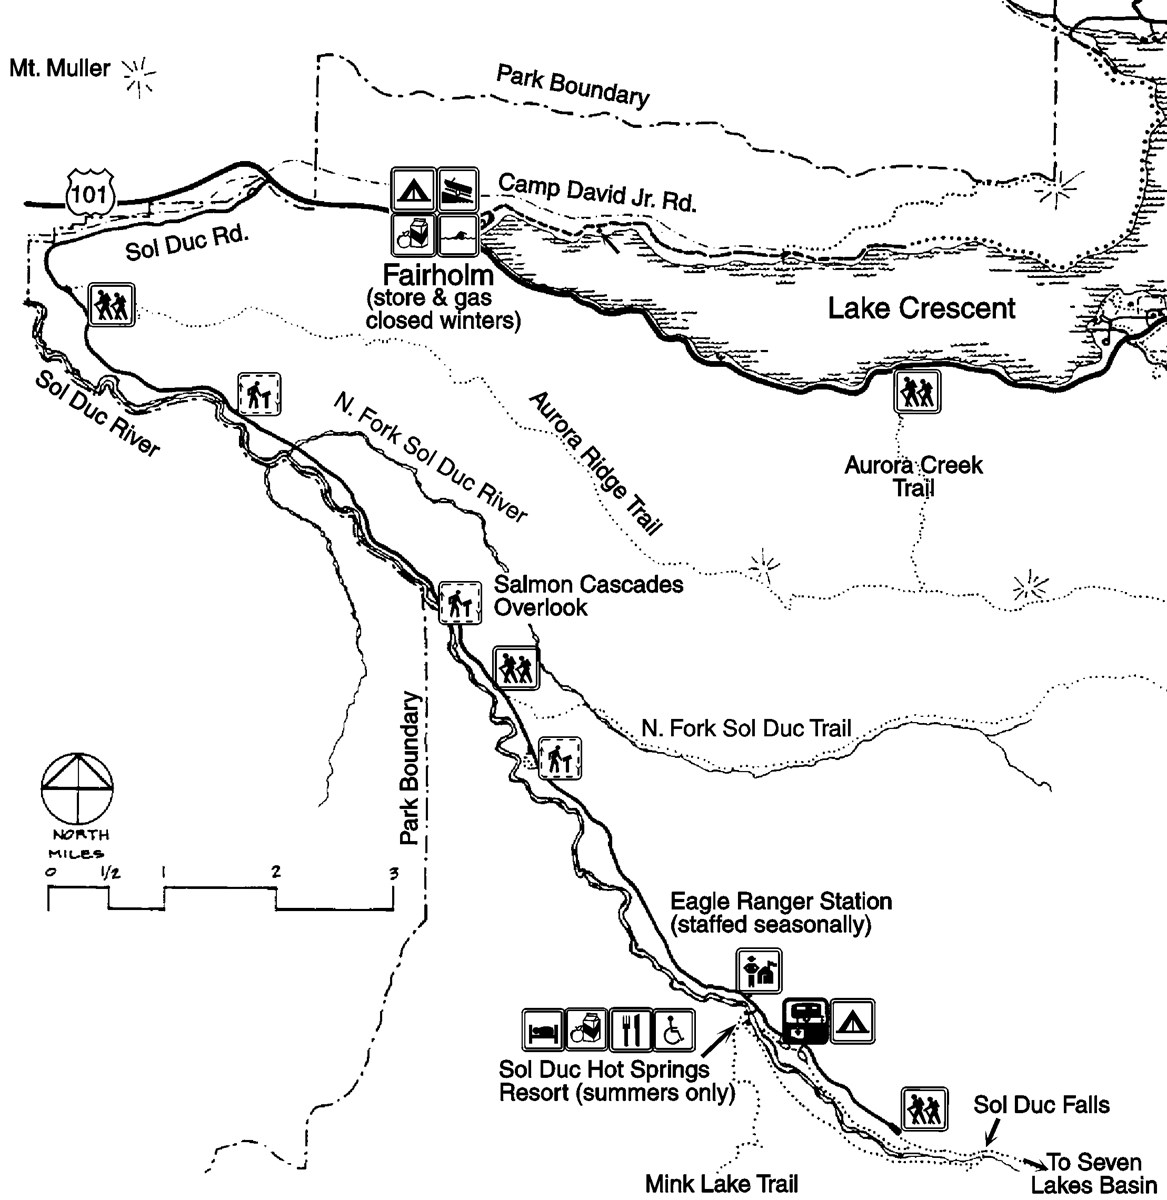 A map of the Sol Duc area including roads, the Sol Duc River, hiking trails, Eagle Ranger Station, Lake Crescent, camping areas, and the Sol Duc Hot Springs Resort